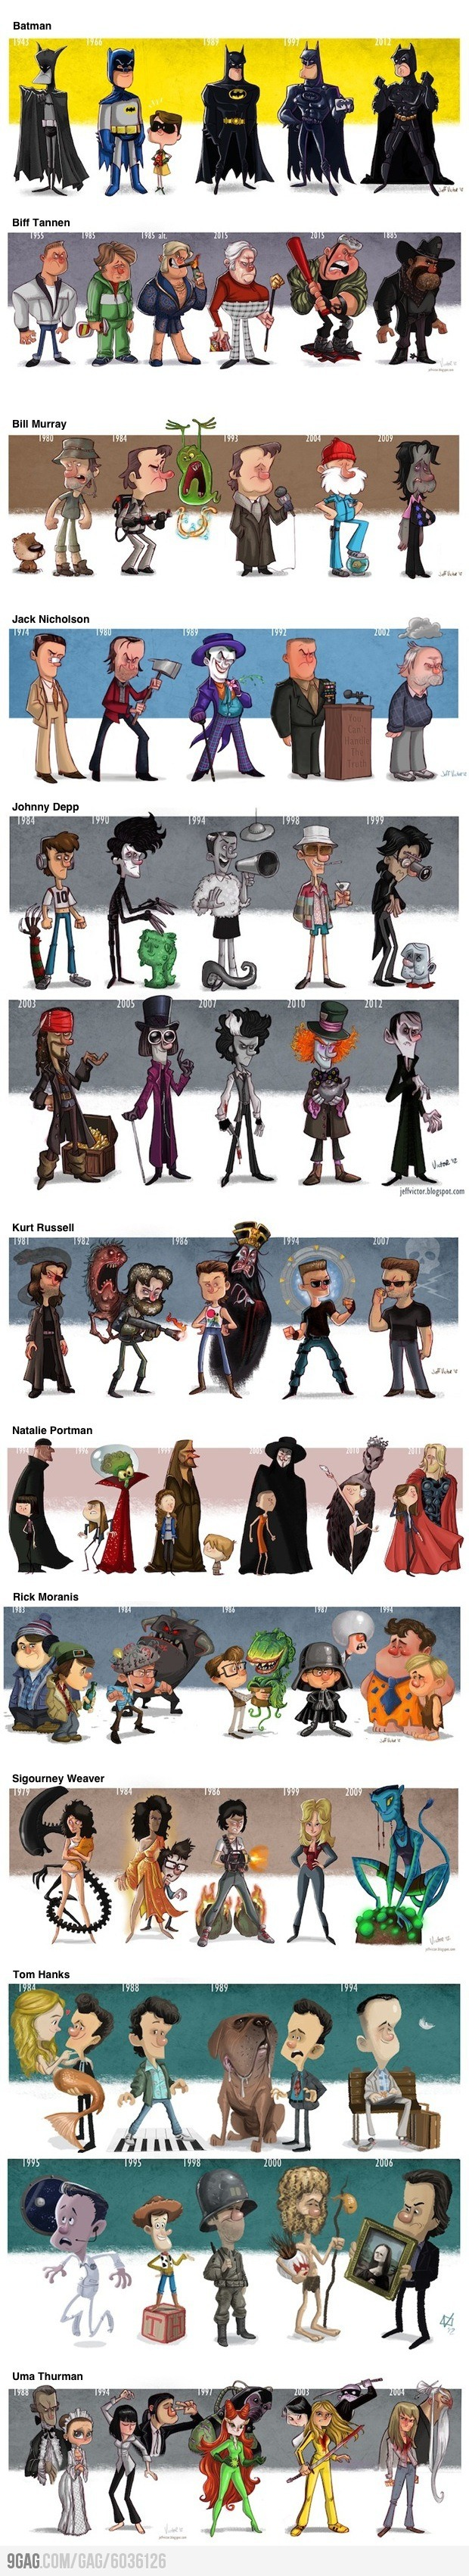 Evolutions ★ Find more at http://www.pinterest.com/competing/